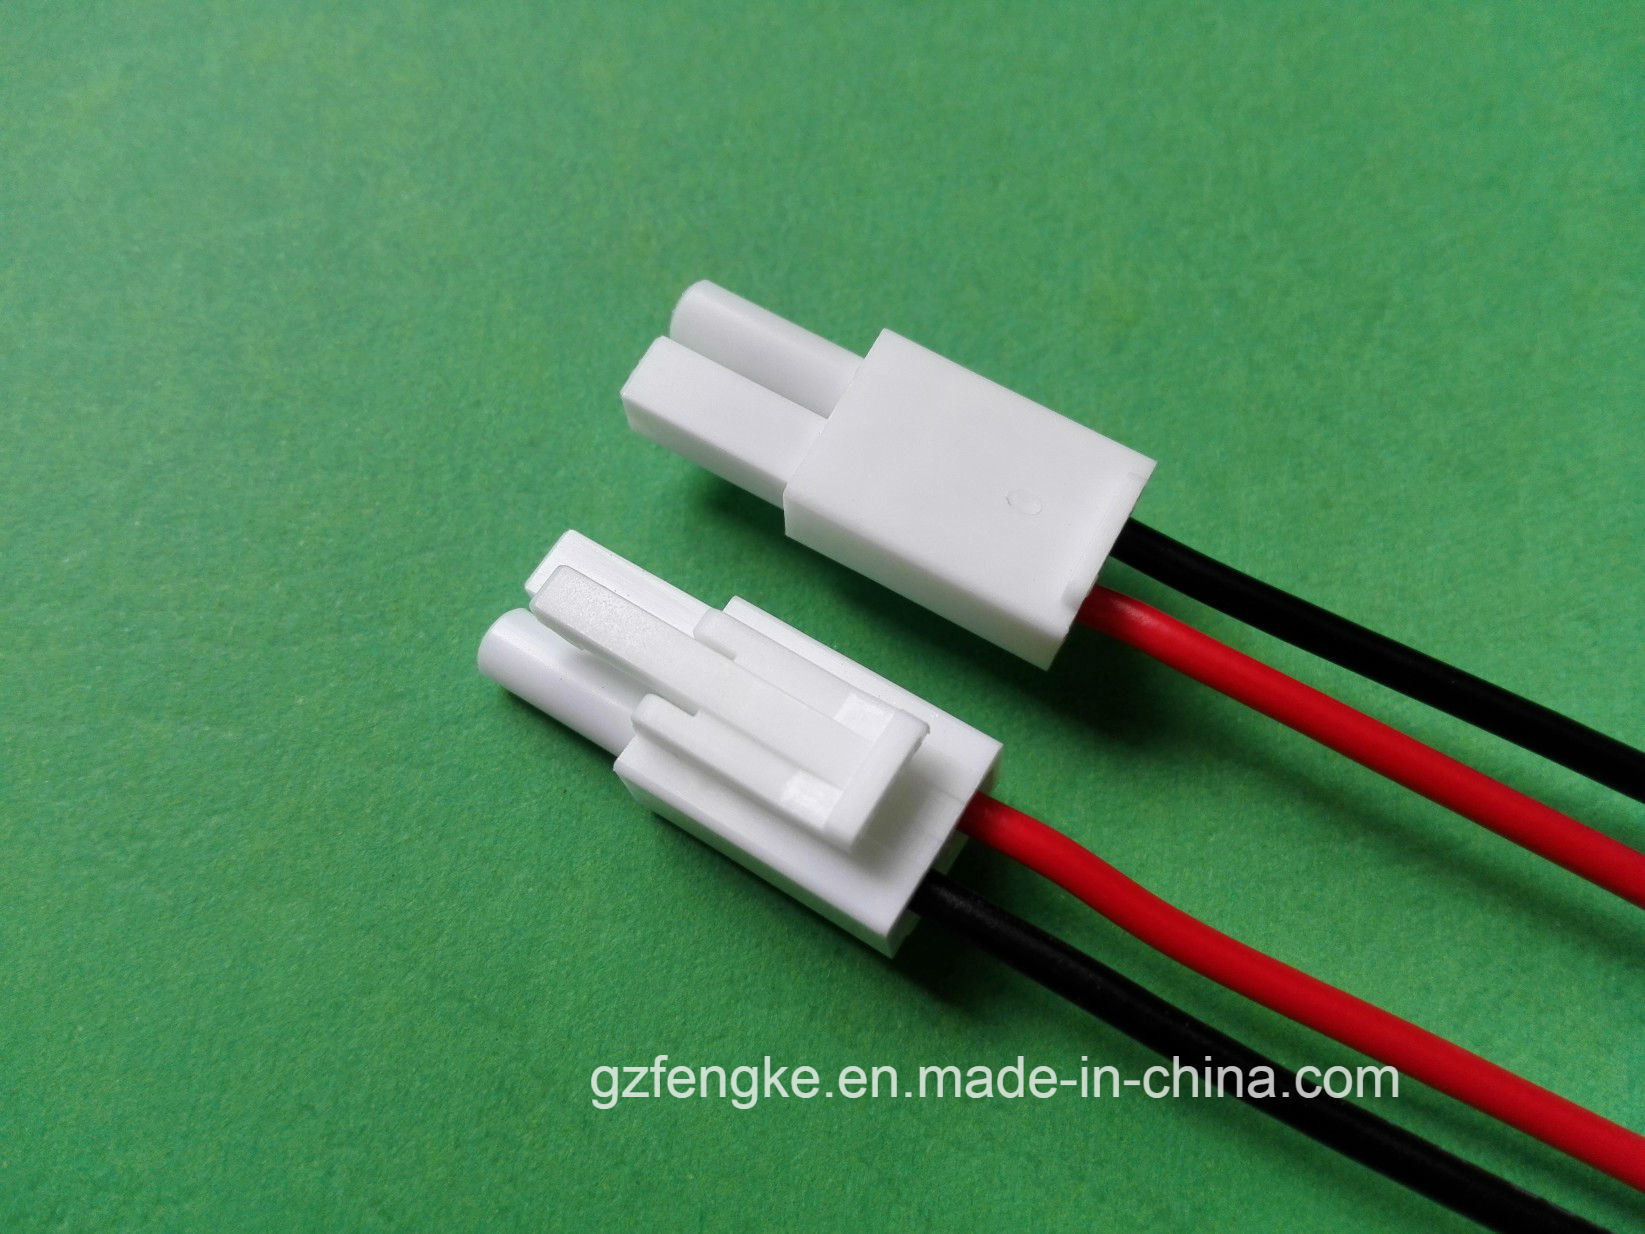 China Wiring Harness Plug Manufacturers Composite Suppliers